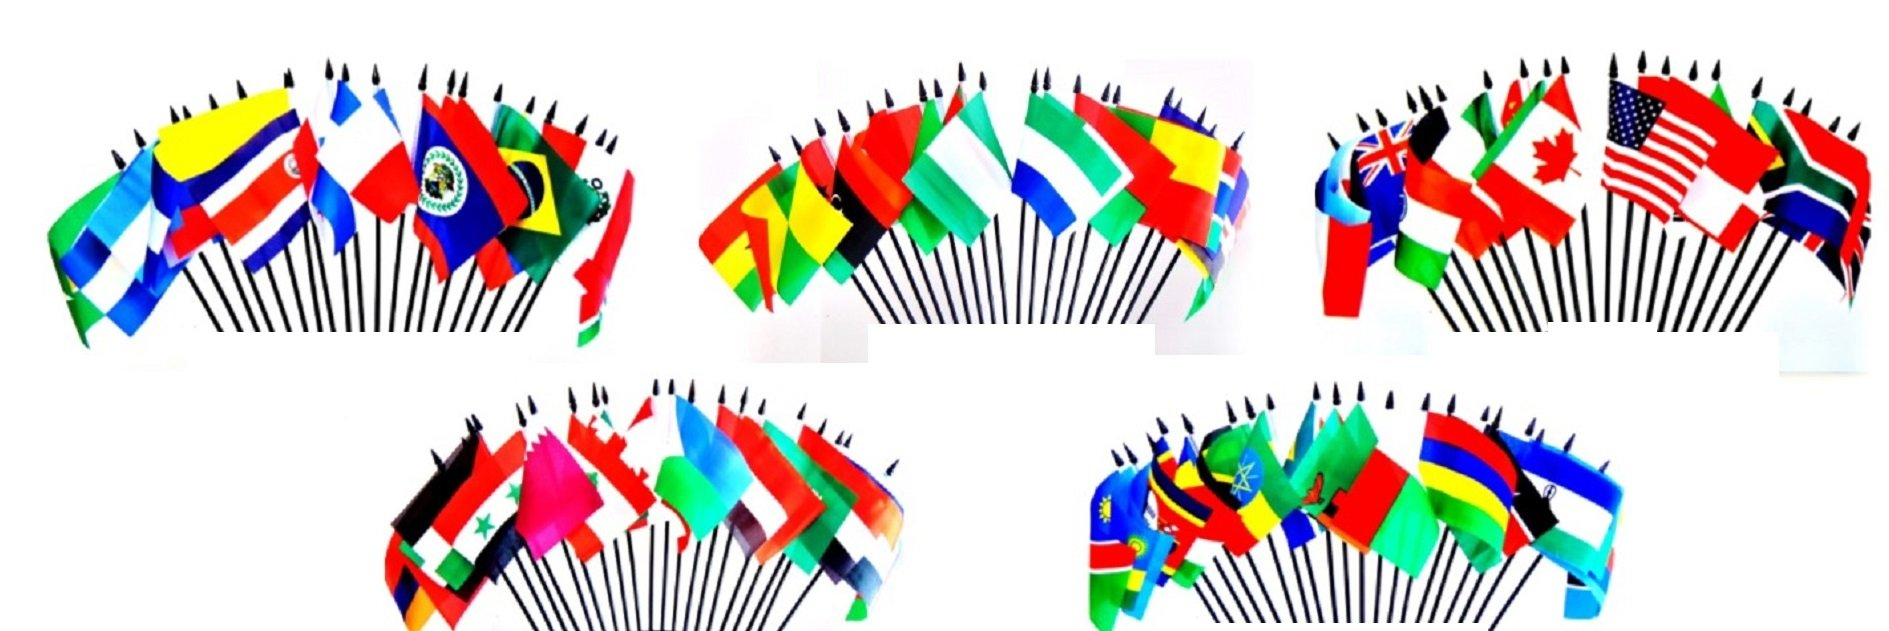 100 World Flag SET-100 Polyester 4''x6'' Flags, One Flag for 100 Popular International Olympic and World Cup Countries Flag Centerpiece, 4x6 Miniature Desk & Table Flags, Small Mini Stick Flags by World Flags Direct